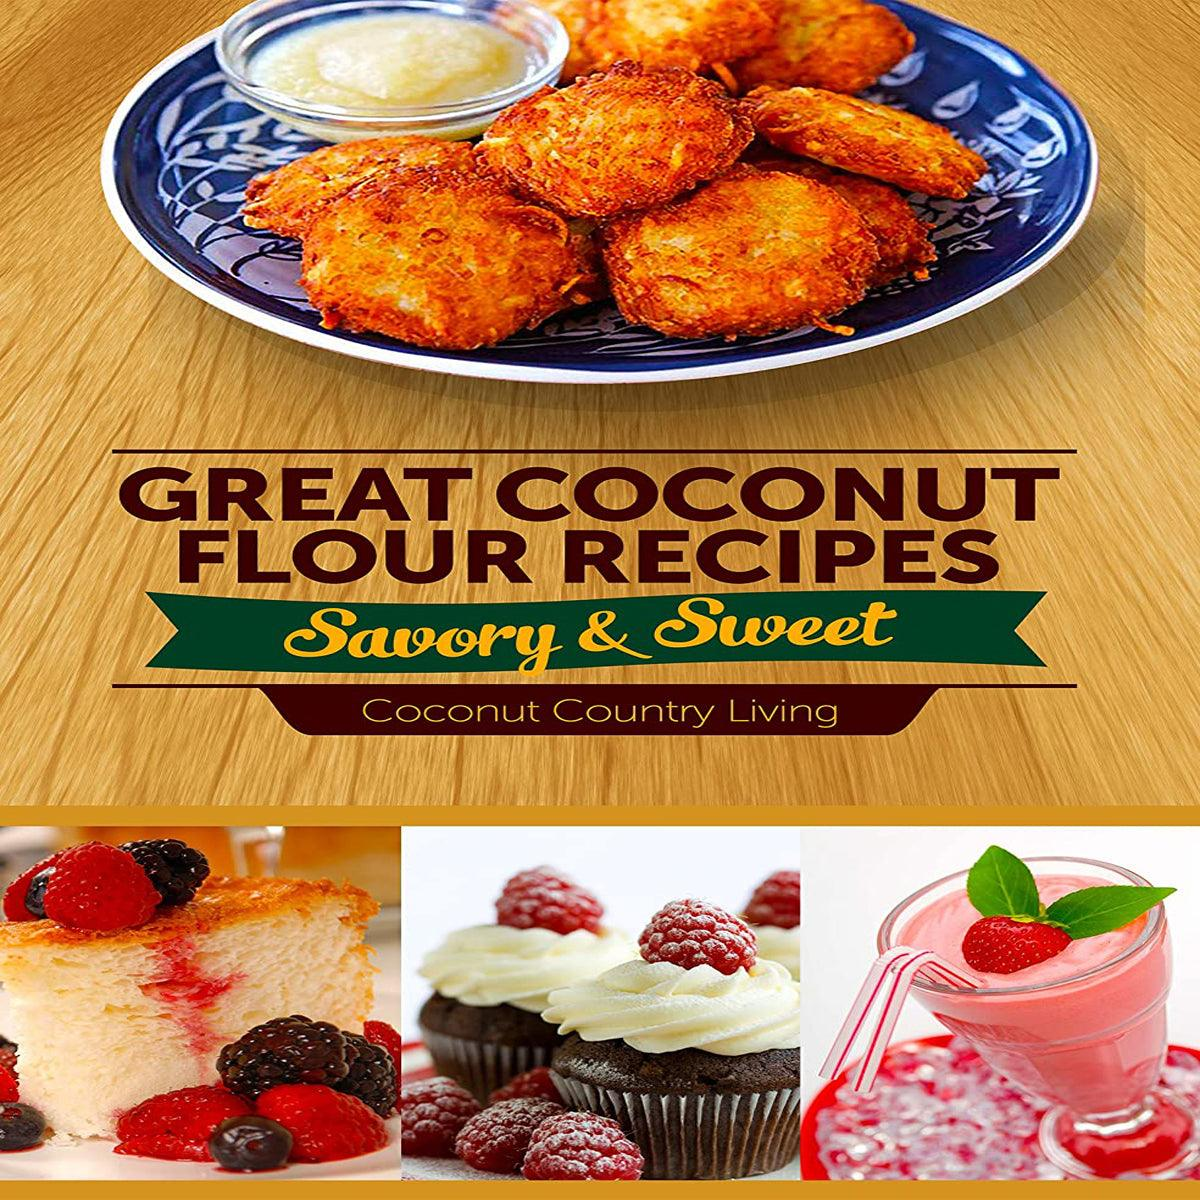 CCL Organic Coconut Flour - Gluten-Free, Raw, Keto, Paleo Friendly - Free E-Book - USDA - USPS Shipping